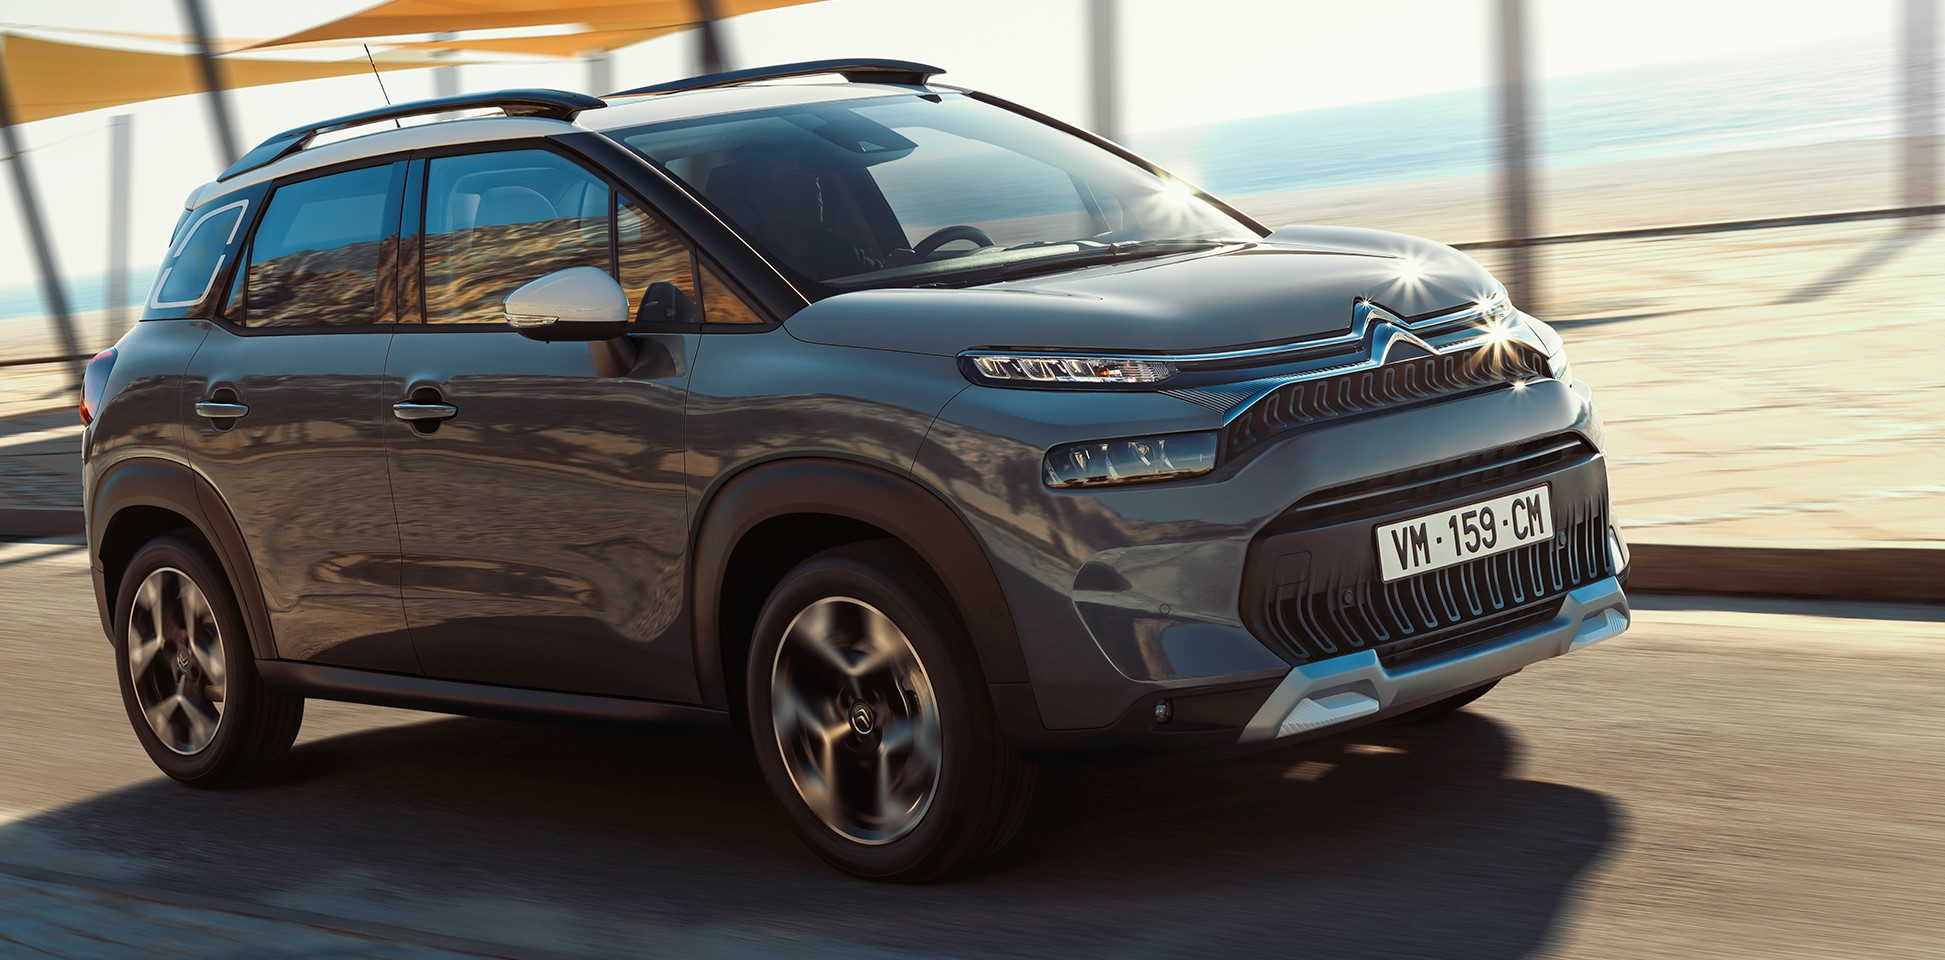 Specification for the Citroen C3 Aircross confirmed